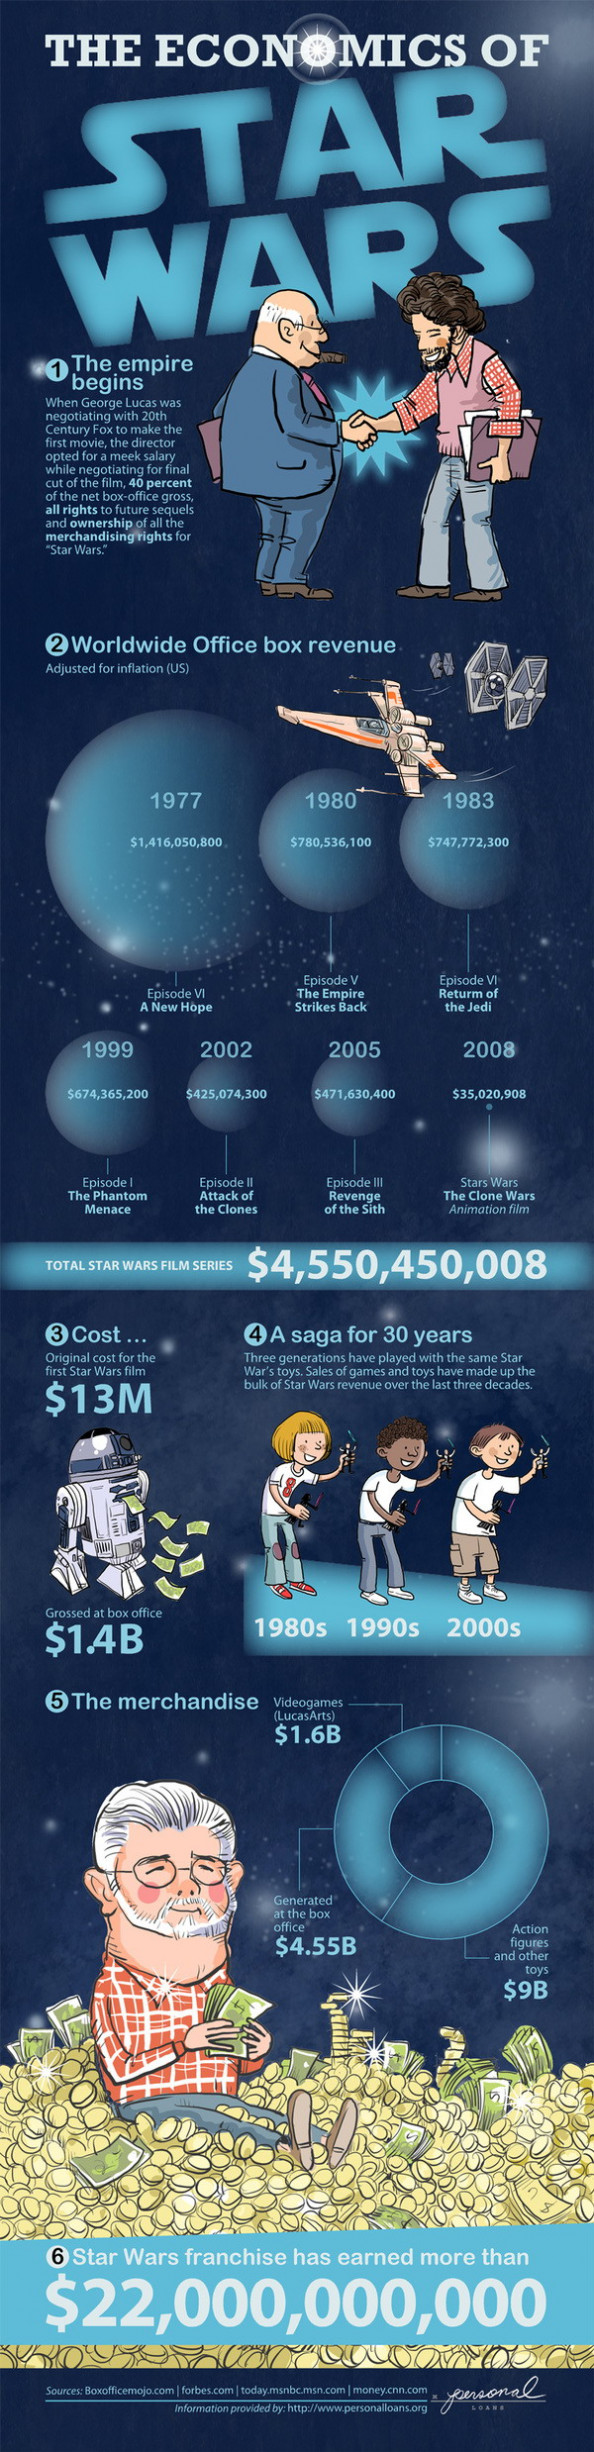 The Economics of Star Wars Infographic